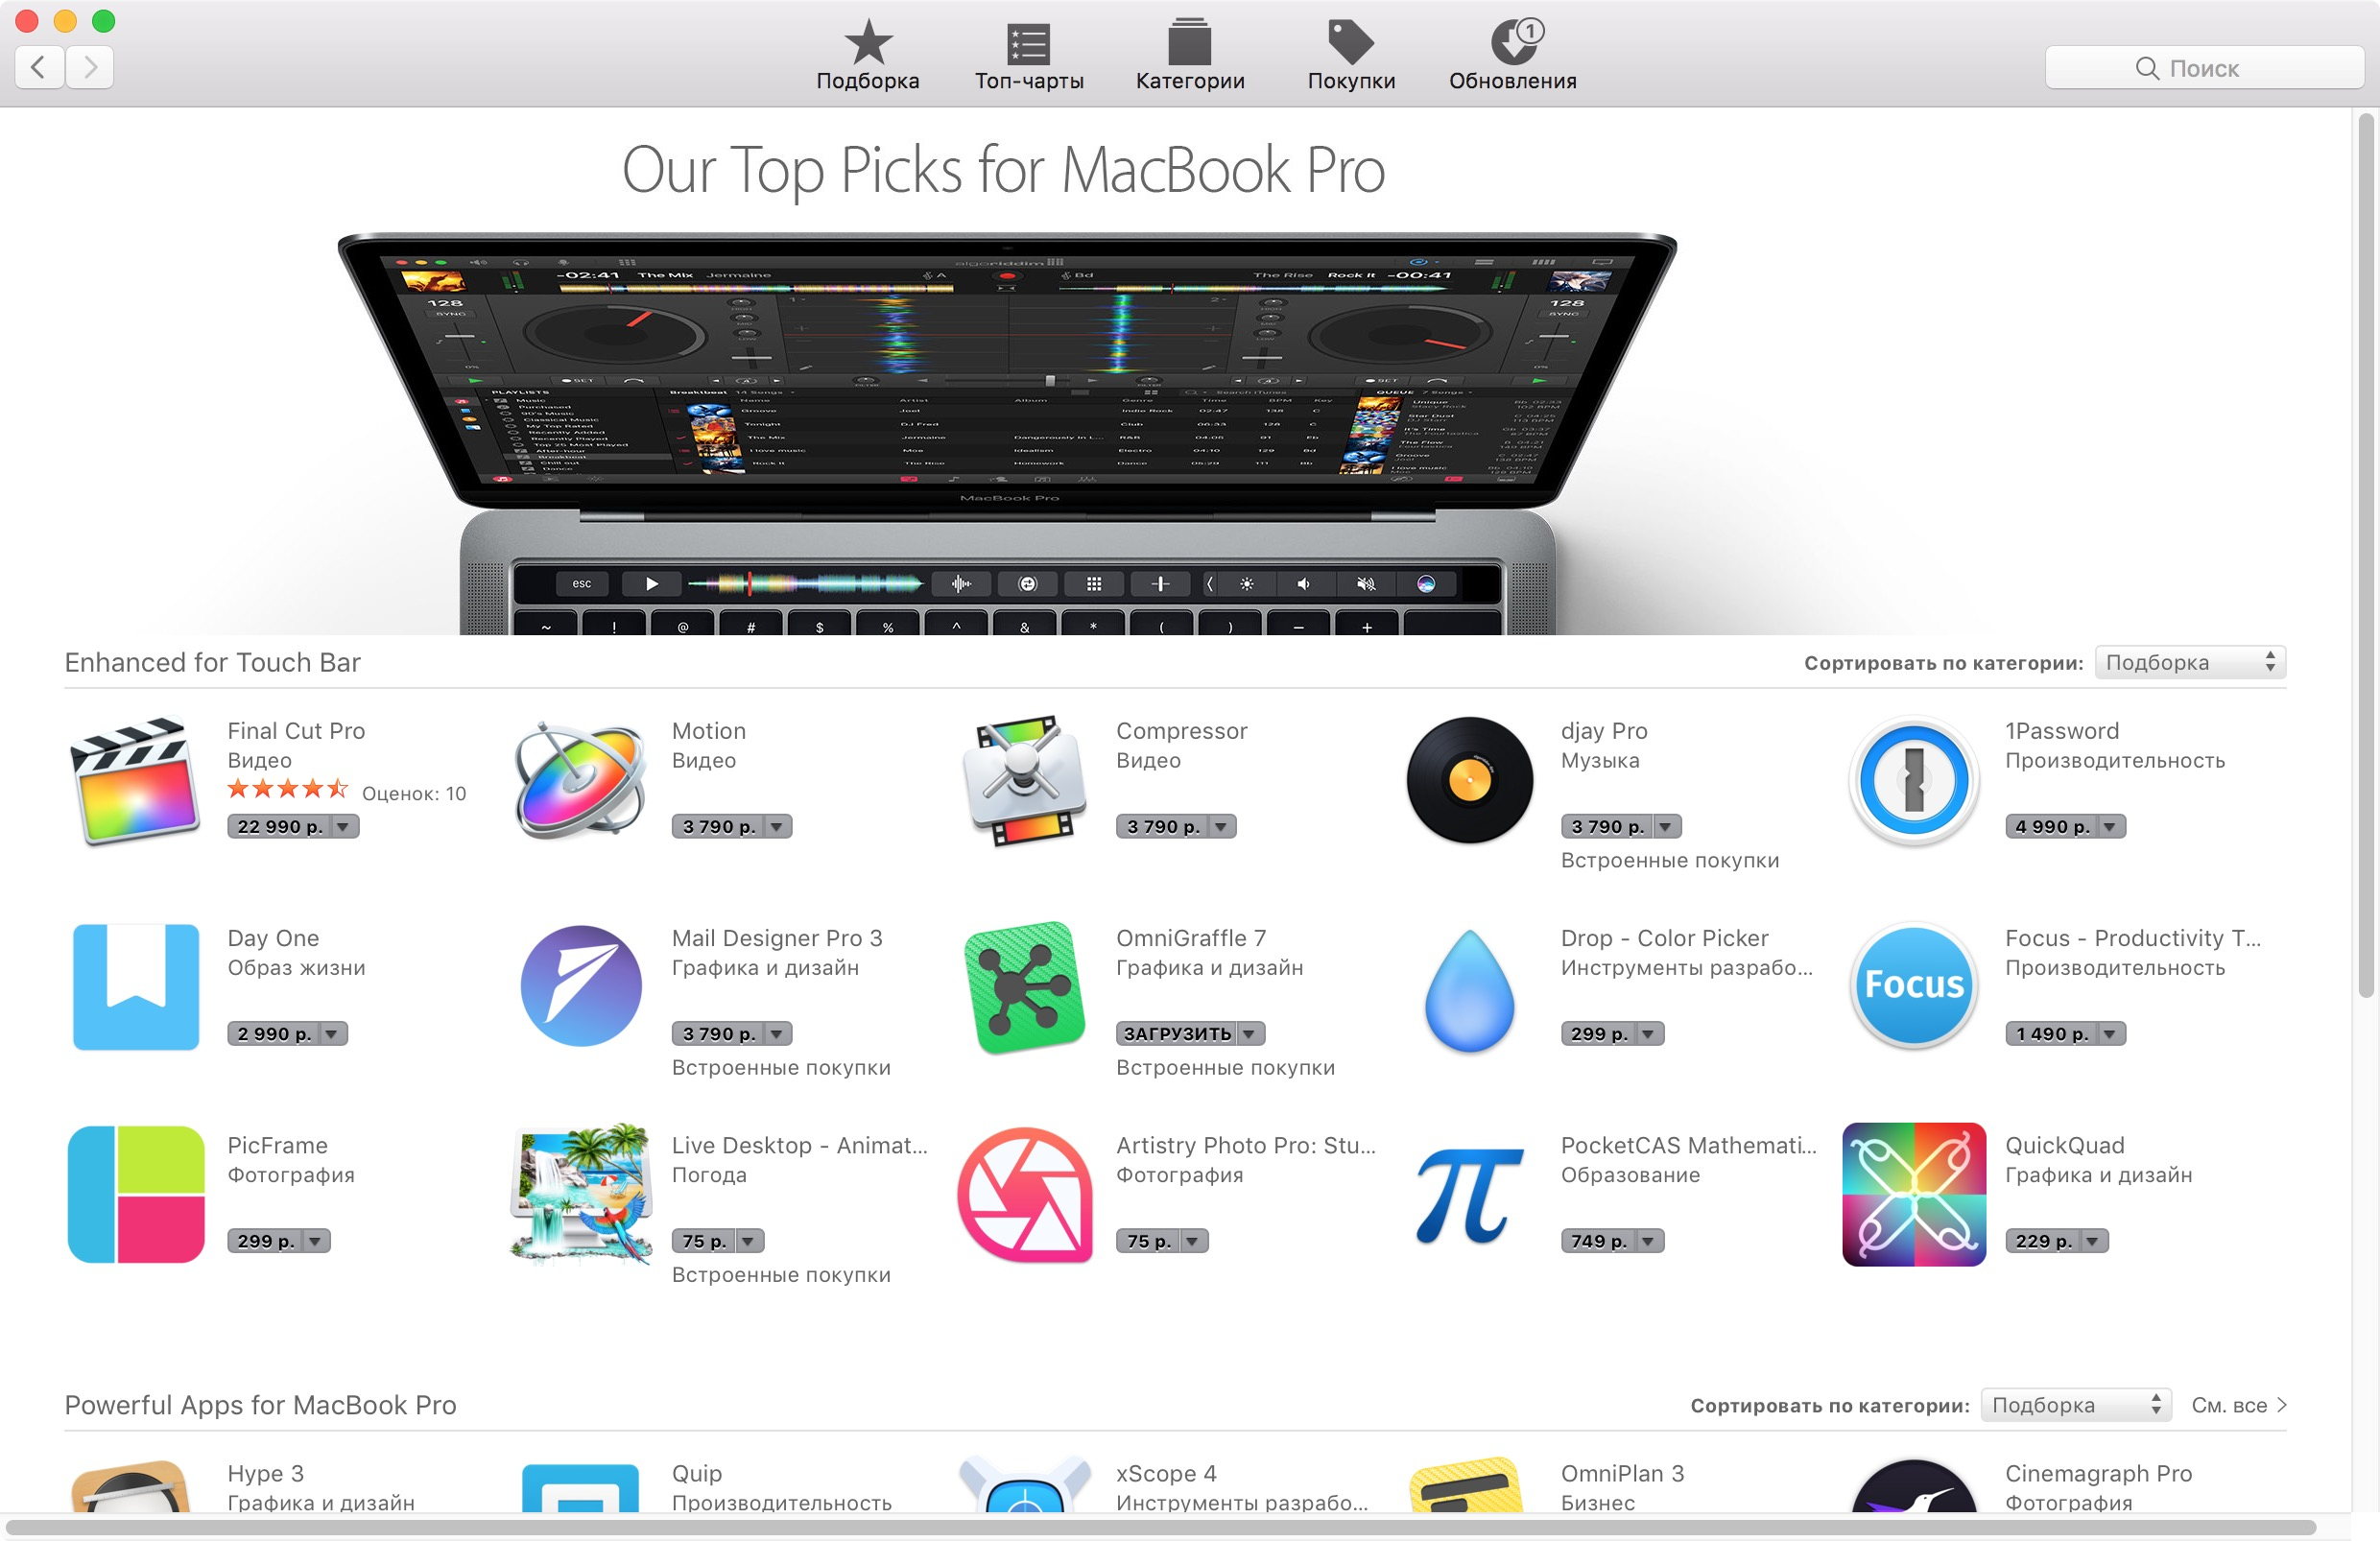 Which applications support the Touch Bar in the new MacBook Pro